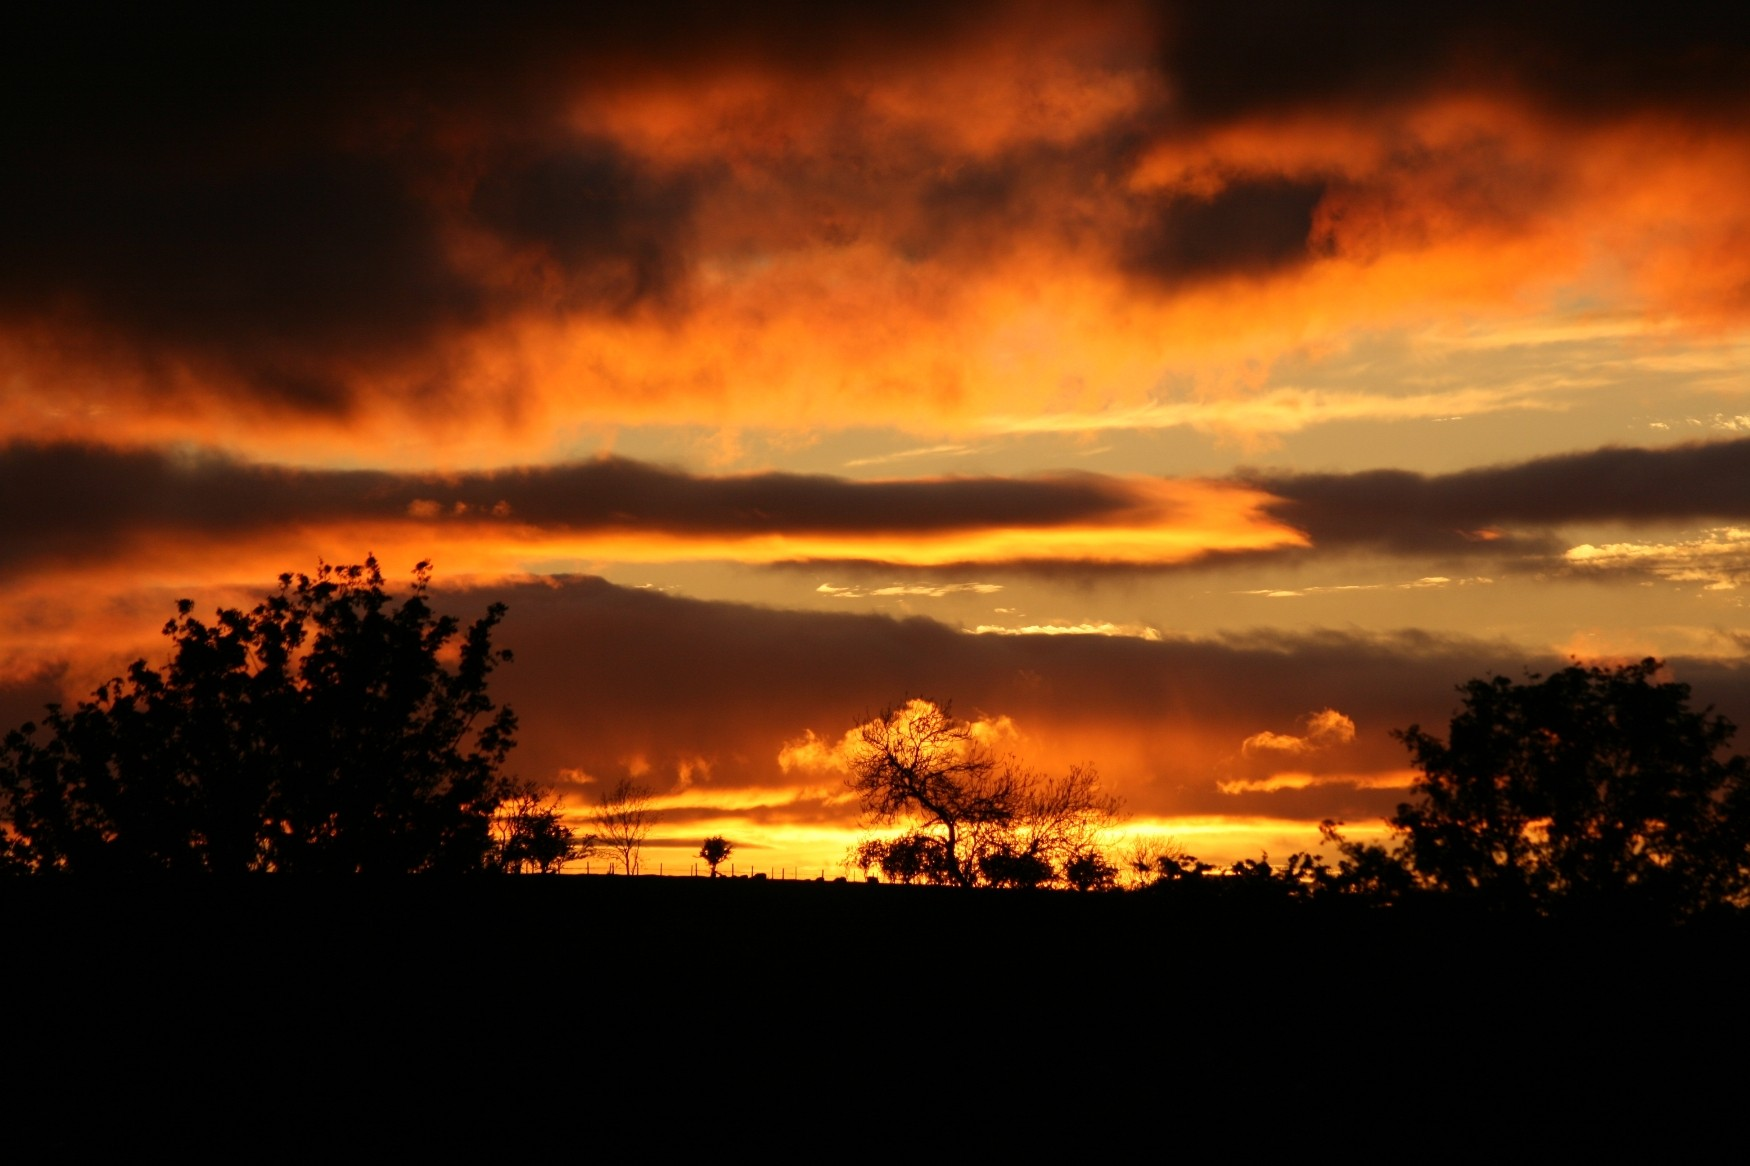 Sunset: Burning Skies Sunset Silhouette Clouds Sky Picture Sunrise ...